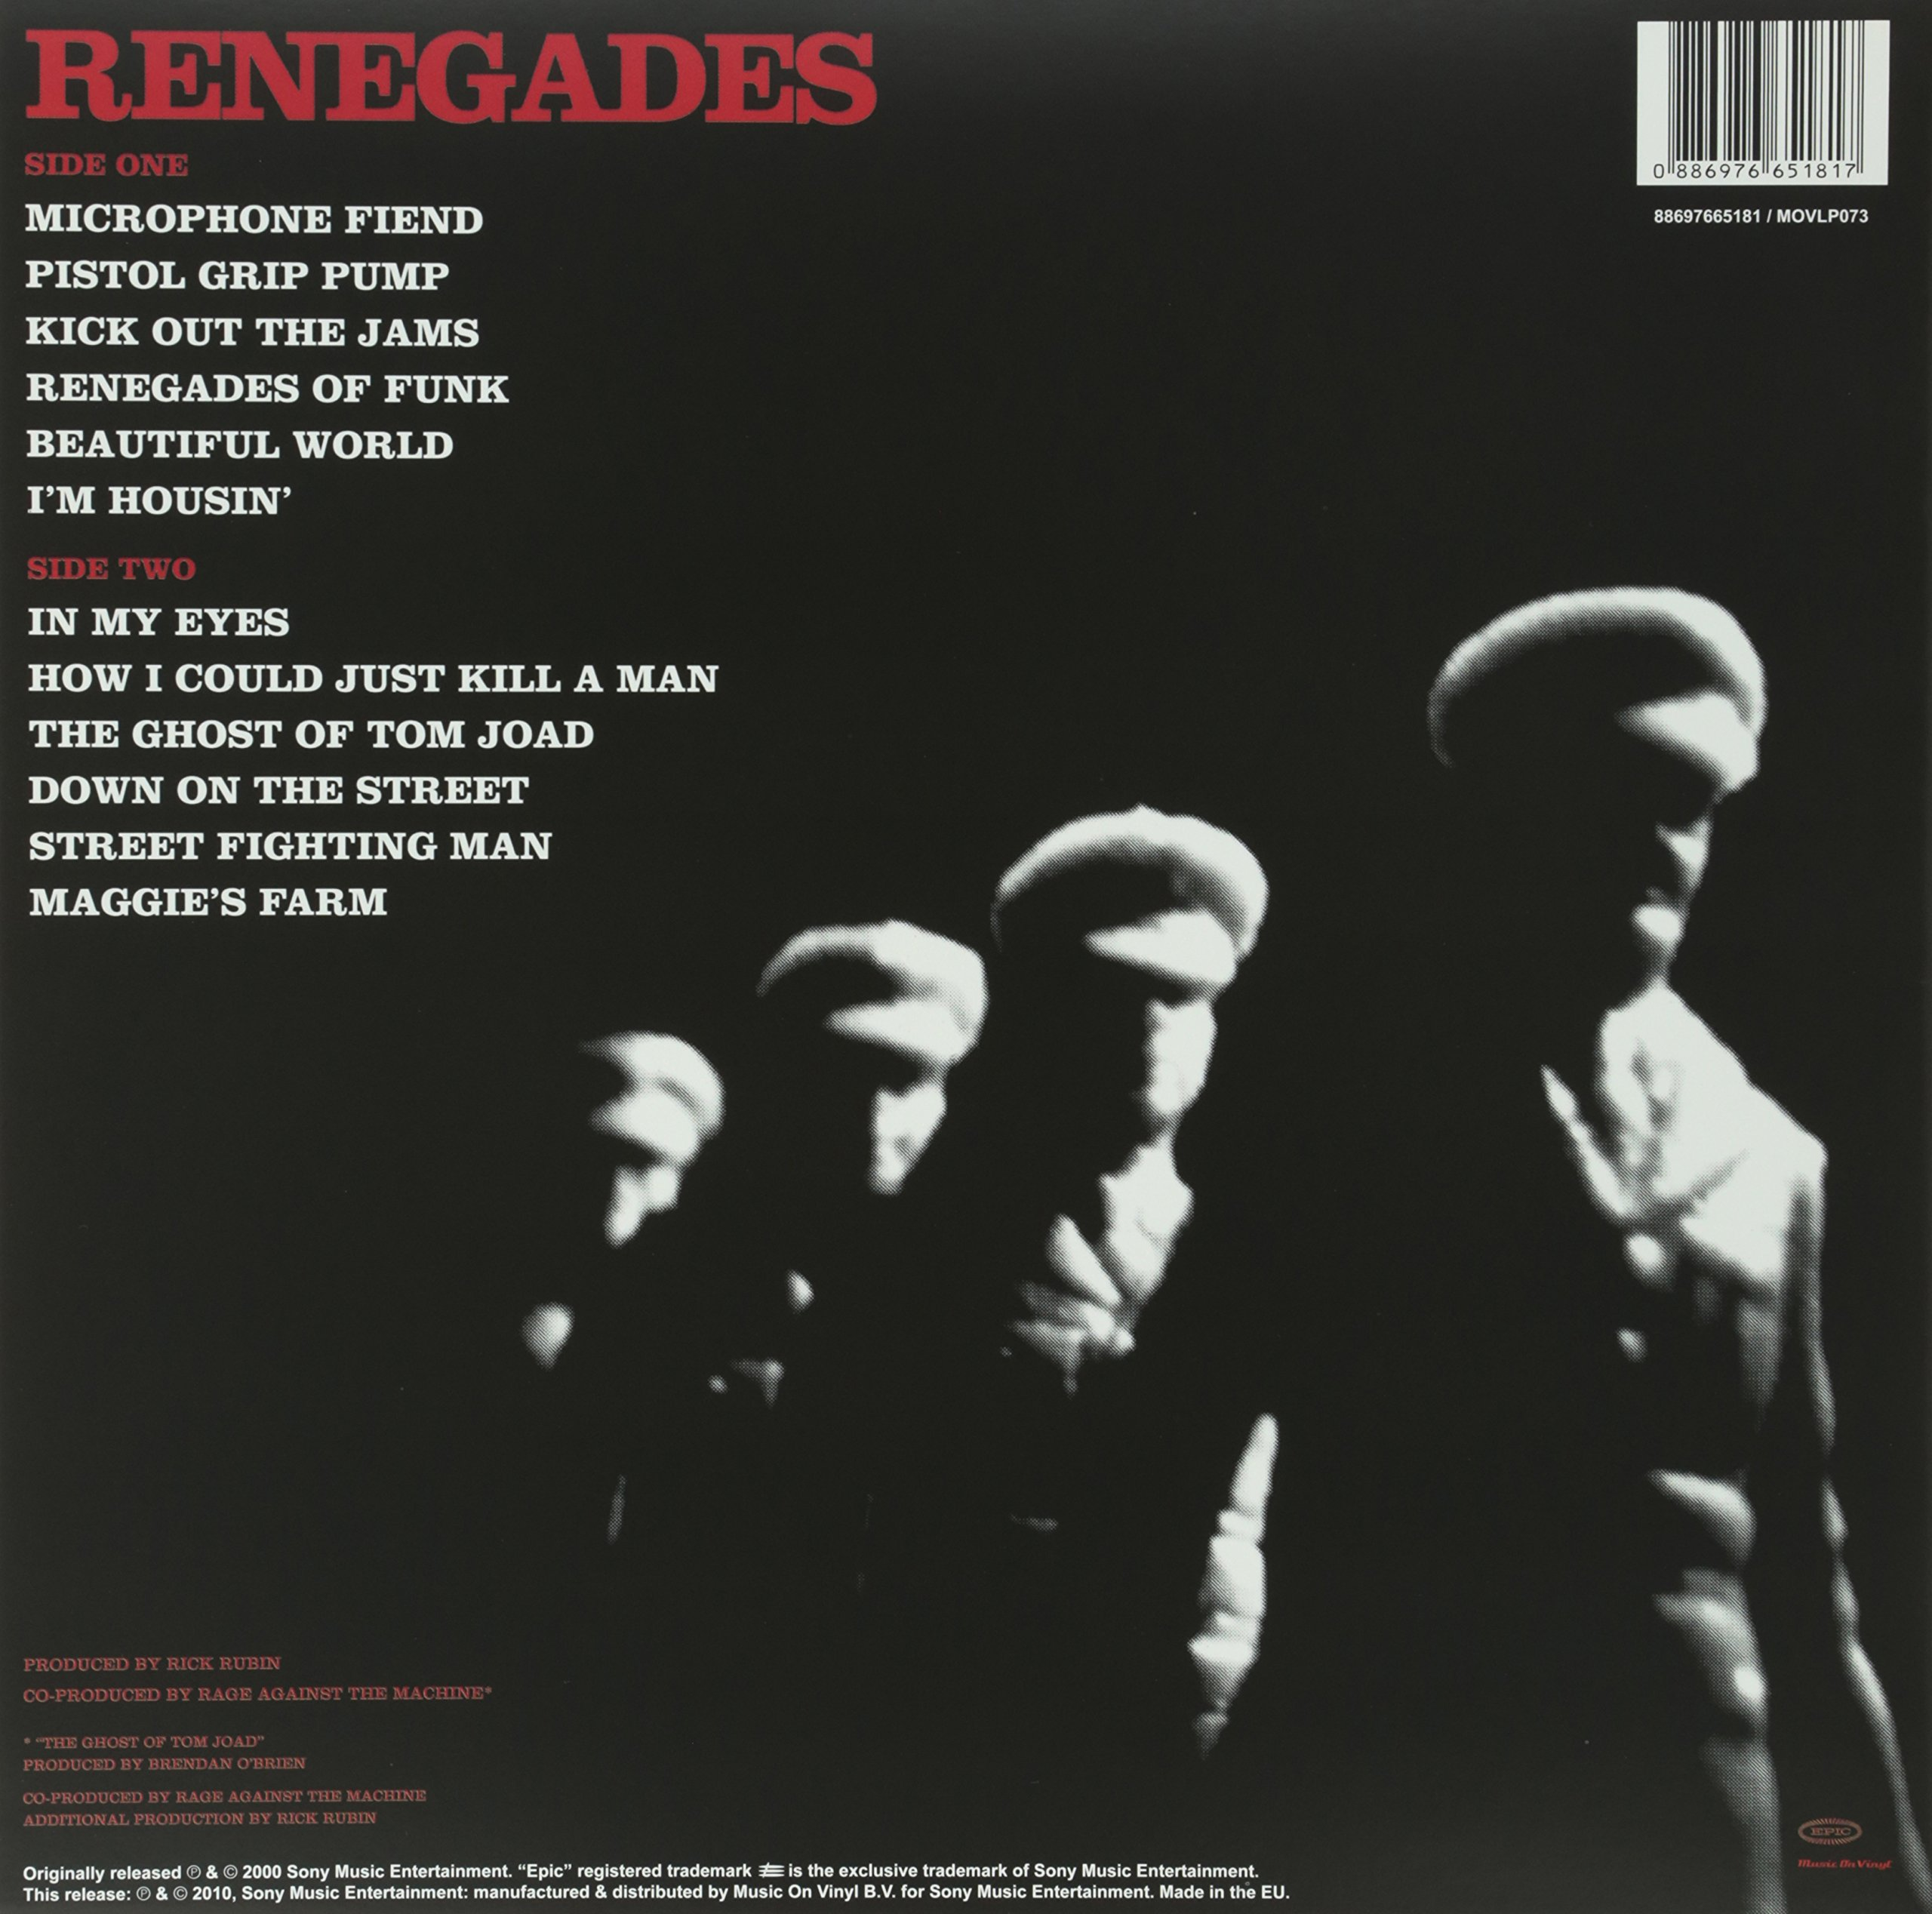 Renegades (Mov Version) by VINYL